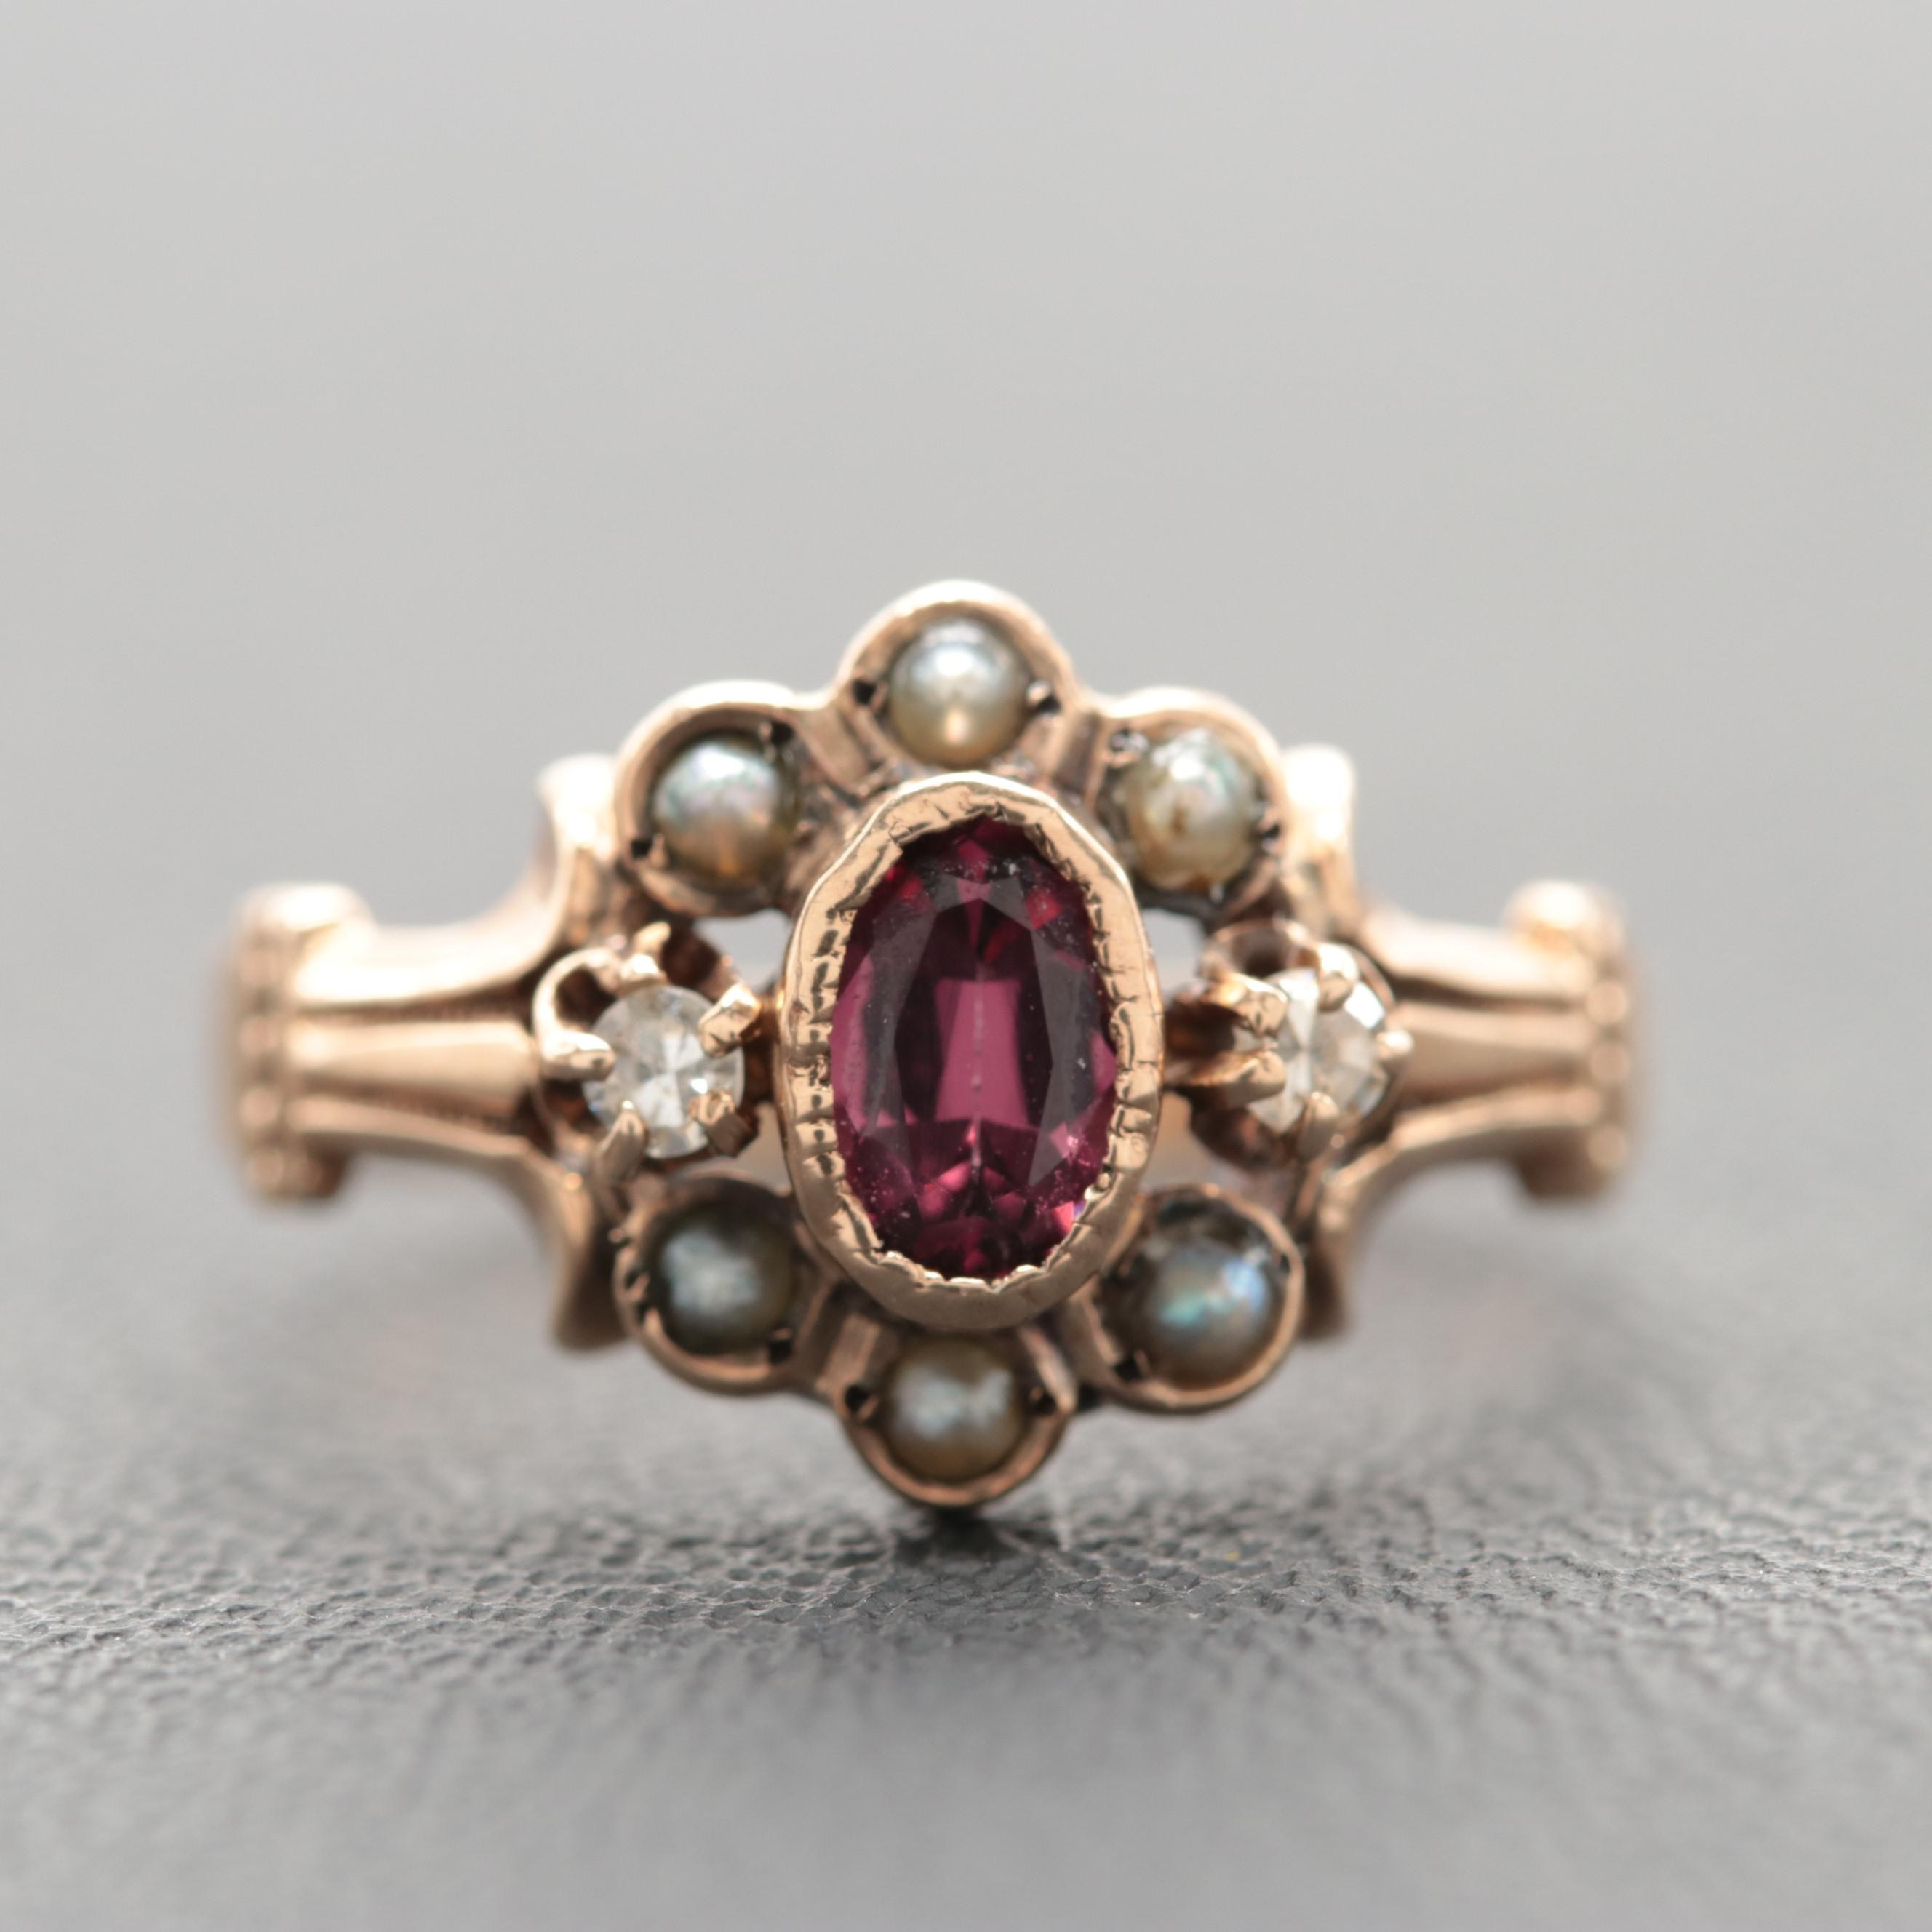 Victorian 10K Rose Gold Garnet, Diamond and Cultured Pearl Ring